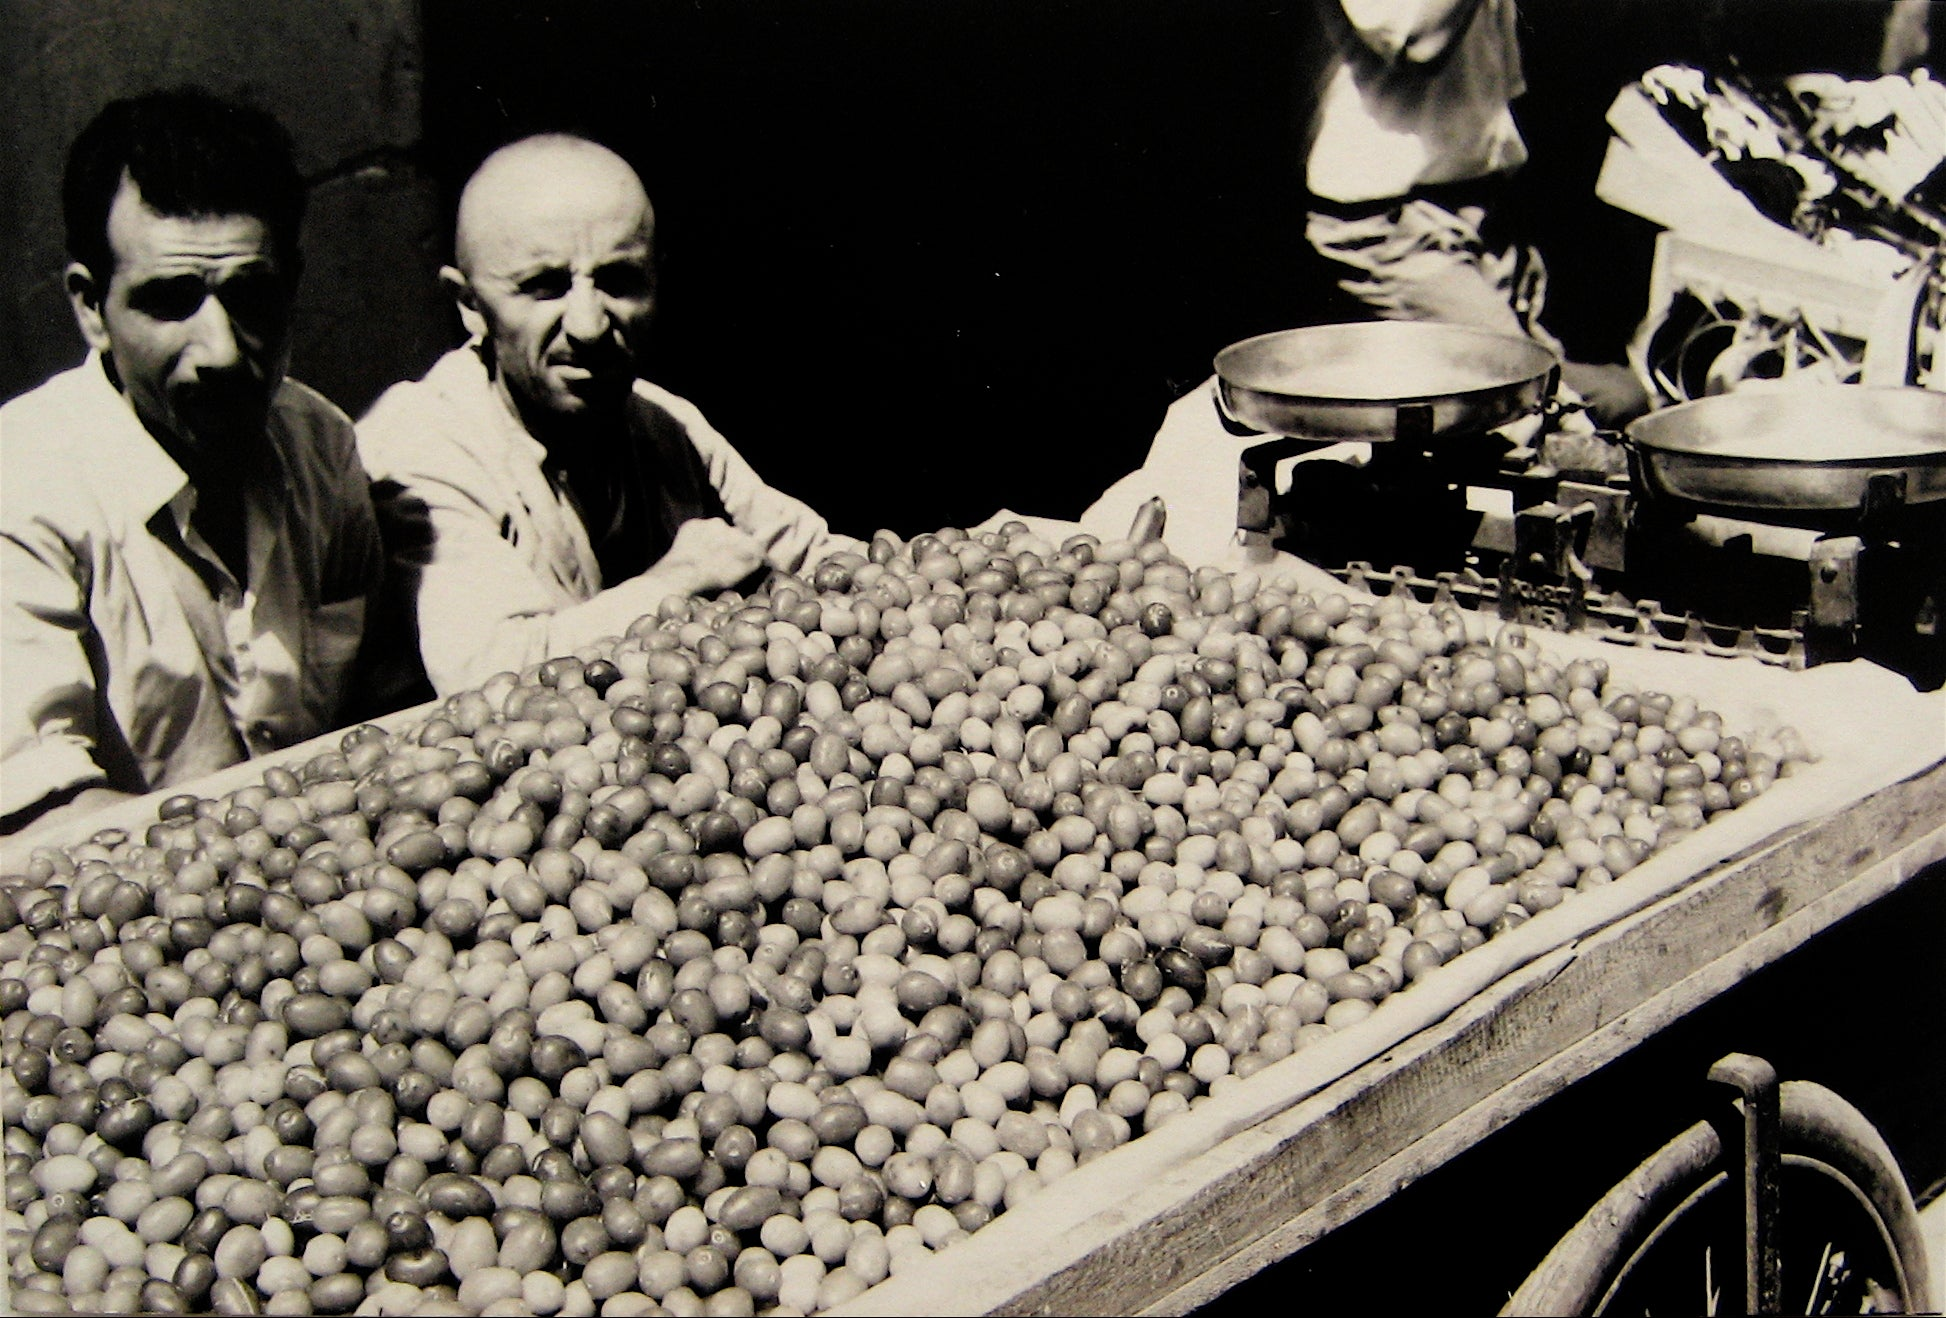 Roasting Chestnuts <br>1960s Photograph <br><br>#16233